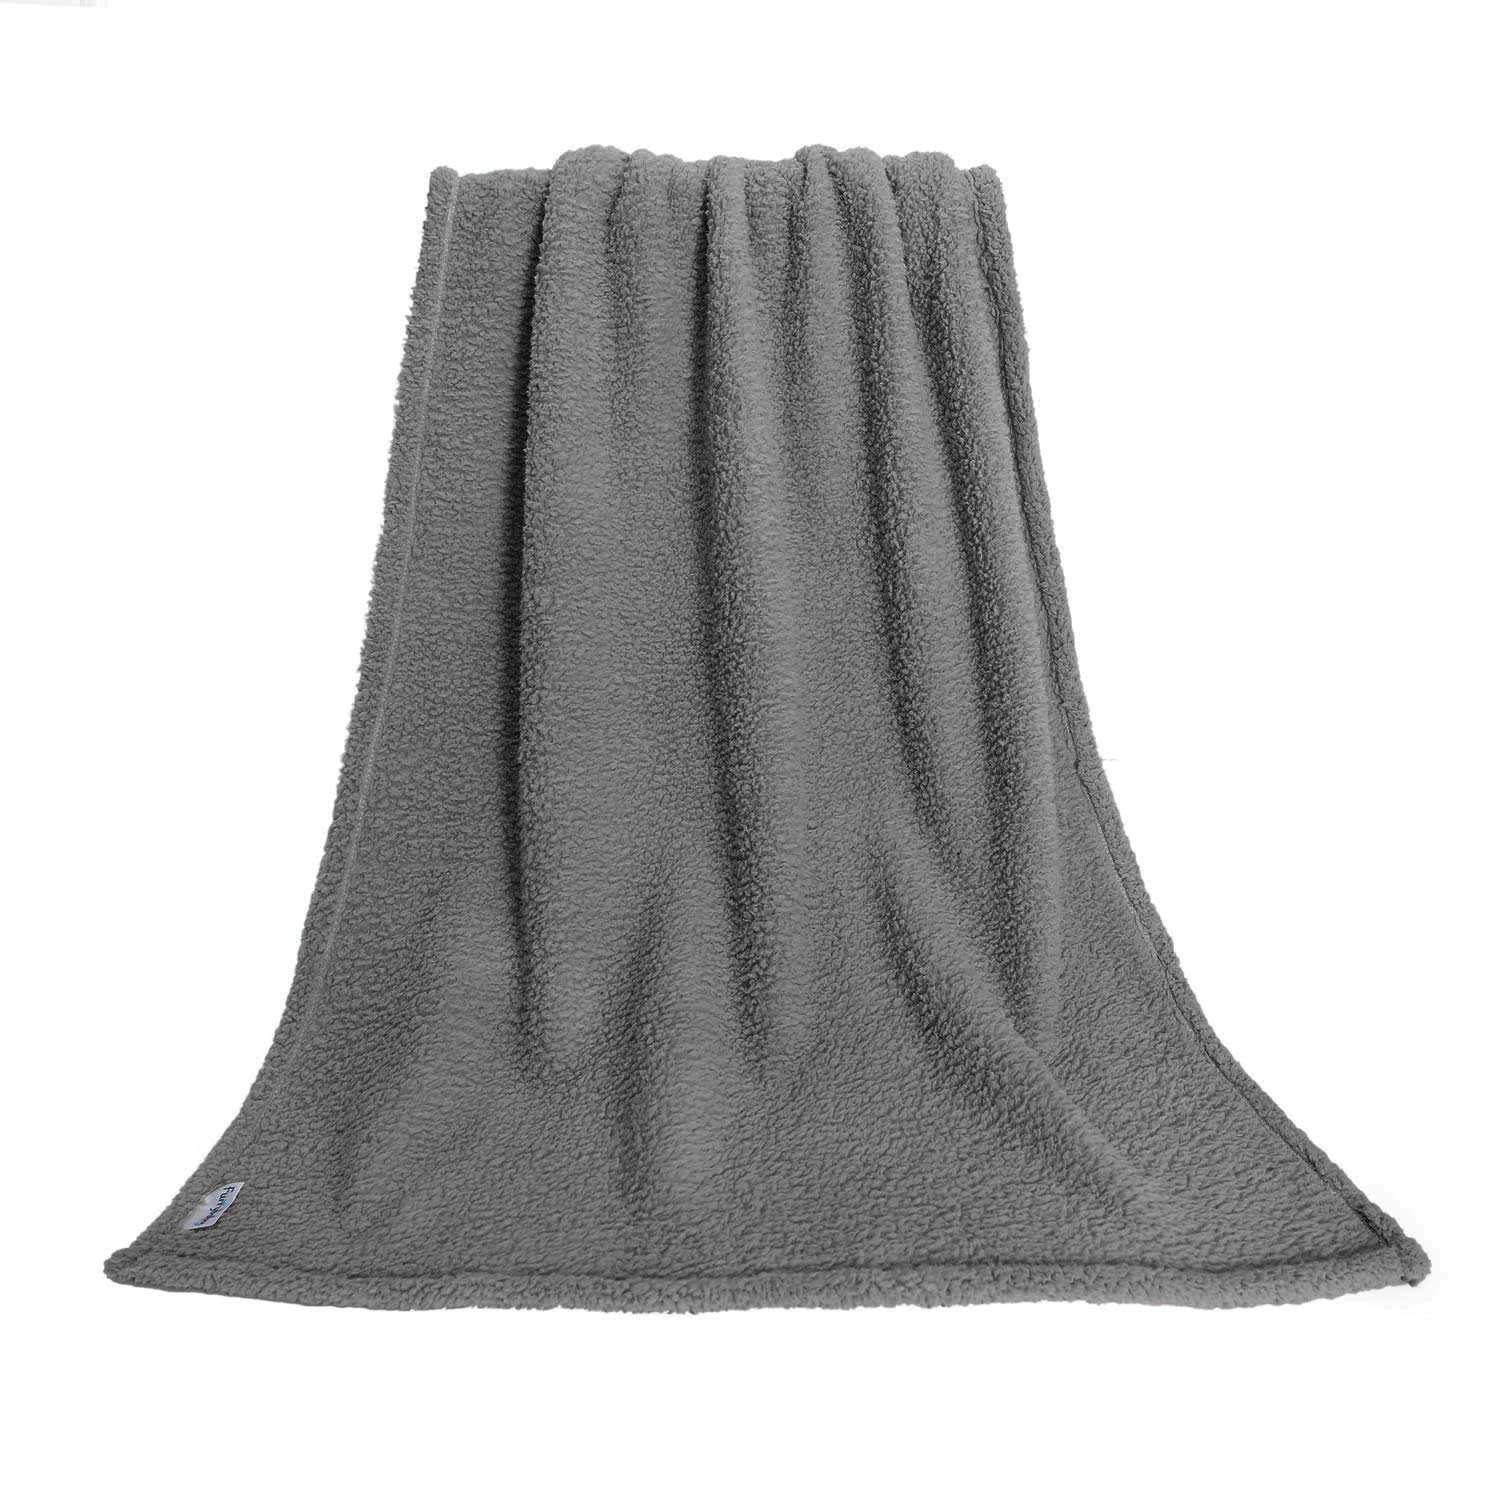 furrybaby Premium Fluffy Fleece Dog Blanket, Soft and Warm Pet Throw for Dogs & Cats (Large 41x65'', Grey)